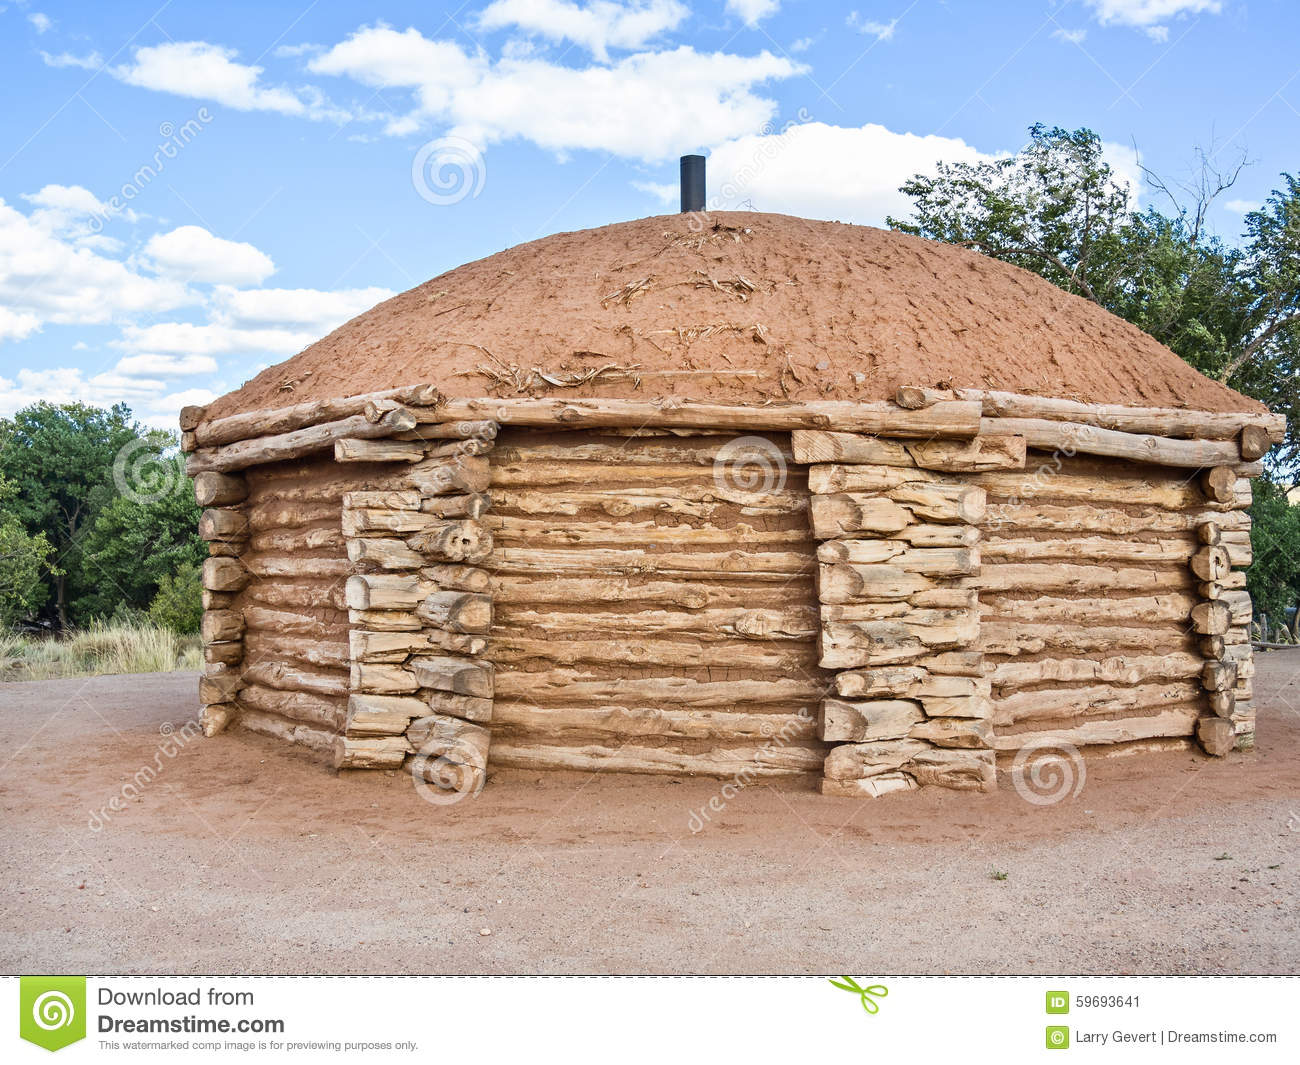 Primitive Native American Dwelling Stock Photos, Images ...